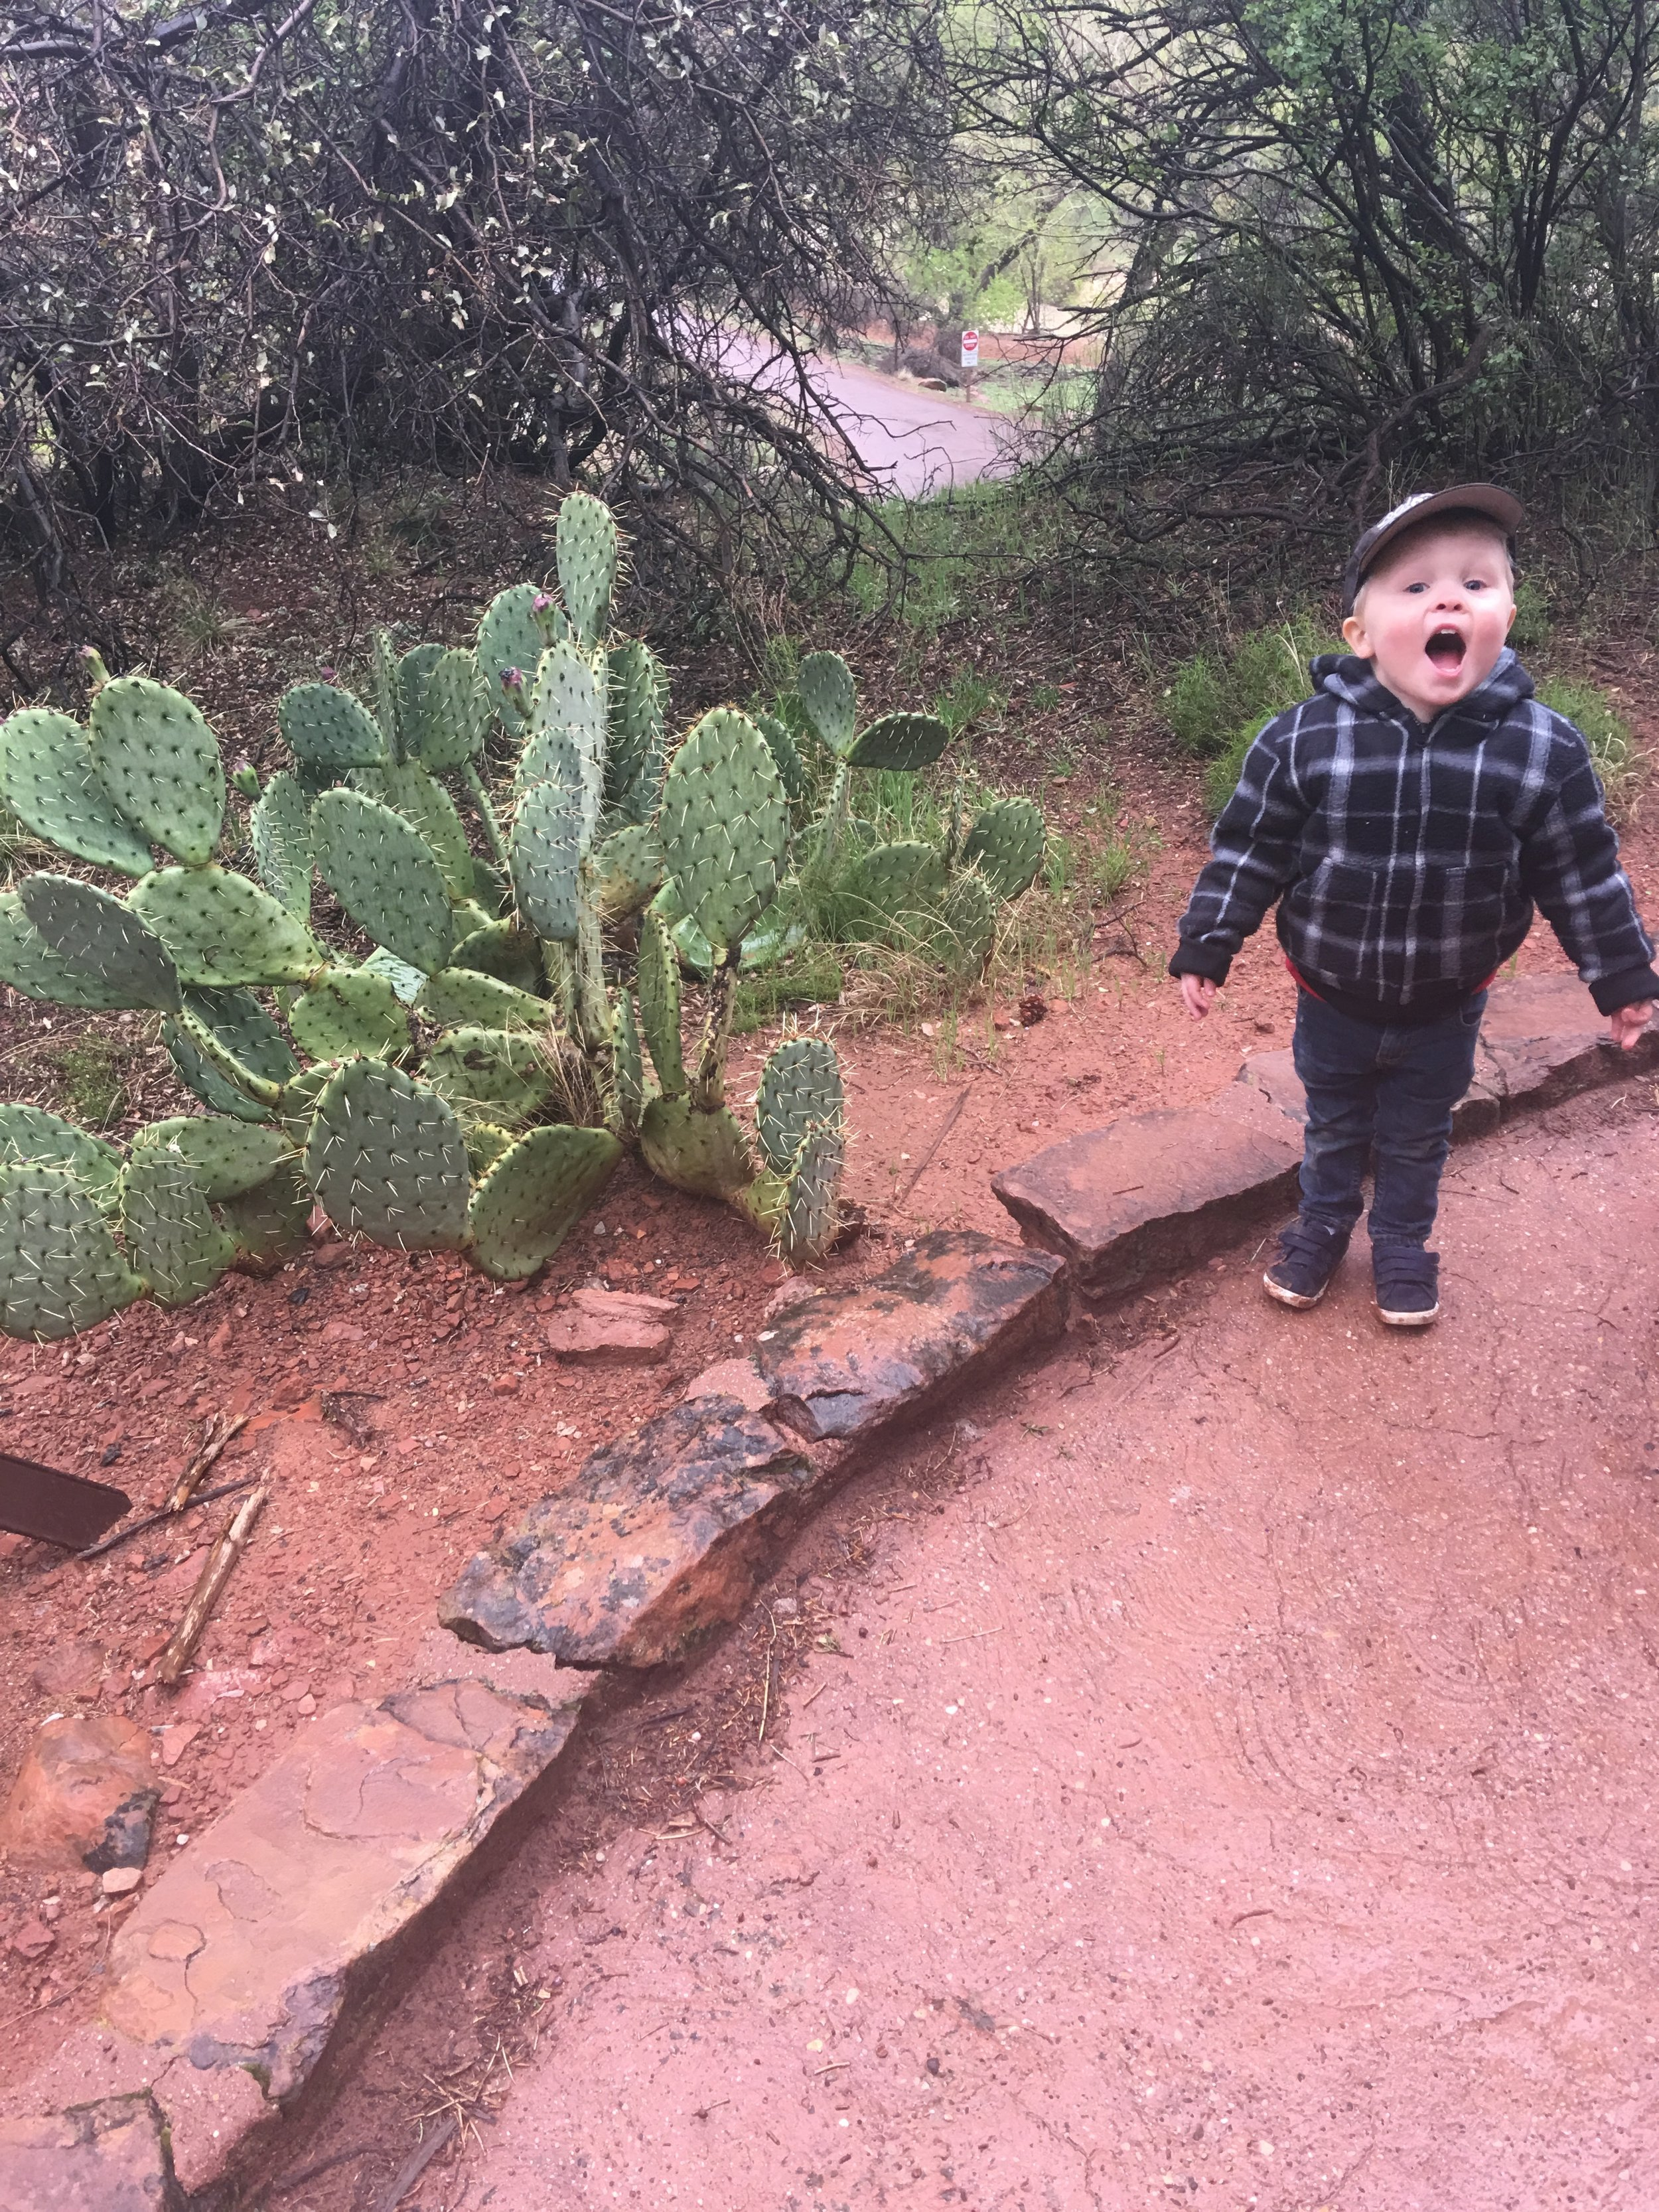 He was pretty excited to see a cactus